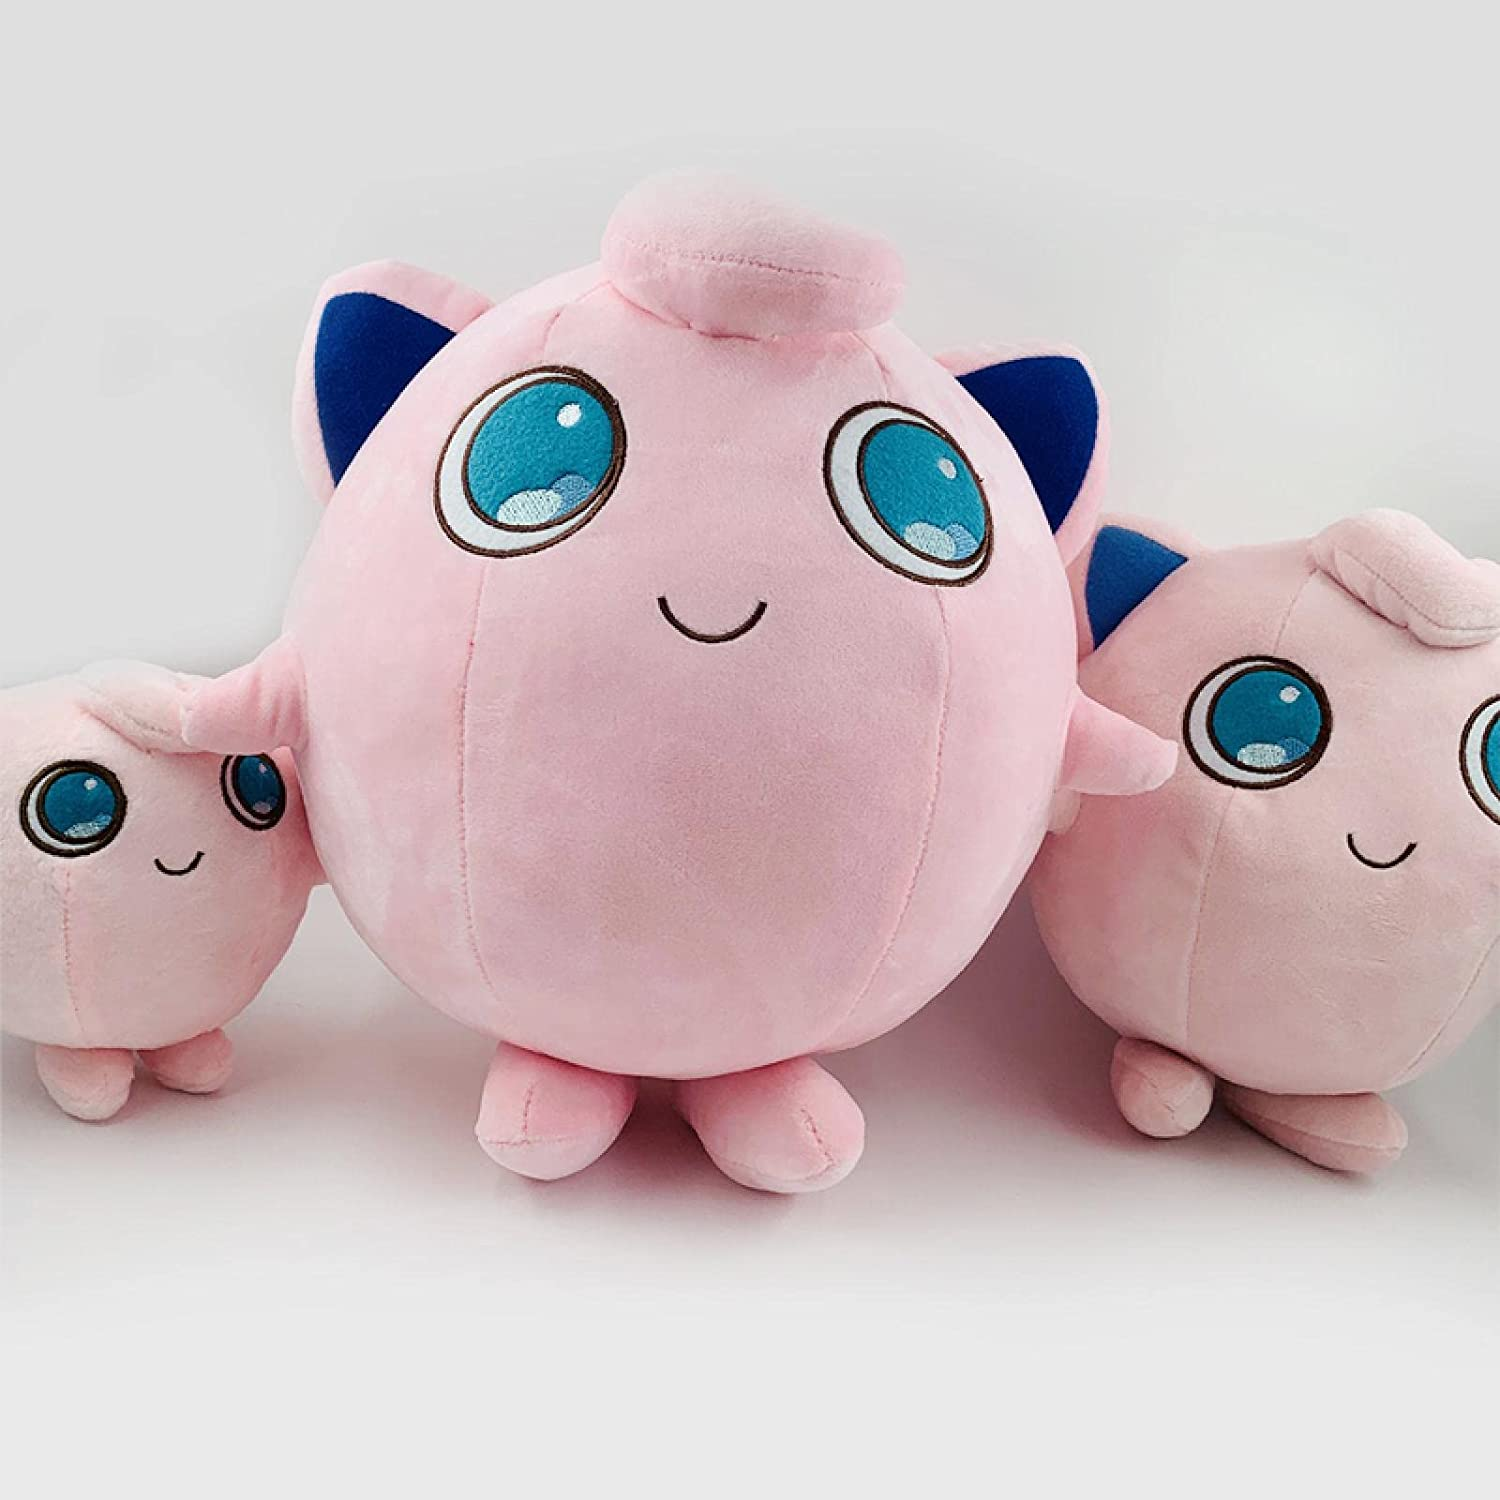 3pcs Pokemon Jigglypuff Anime Soft Plush Chi Cute Max 47% OFF Excellence Toys Gifts for